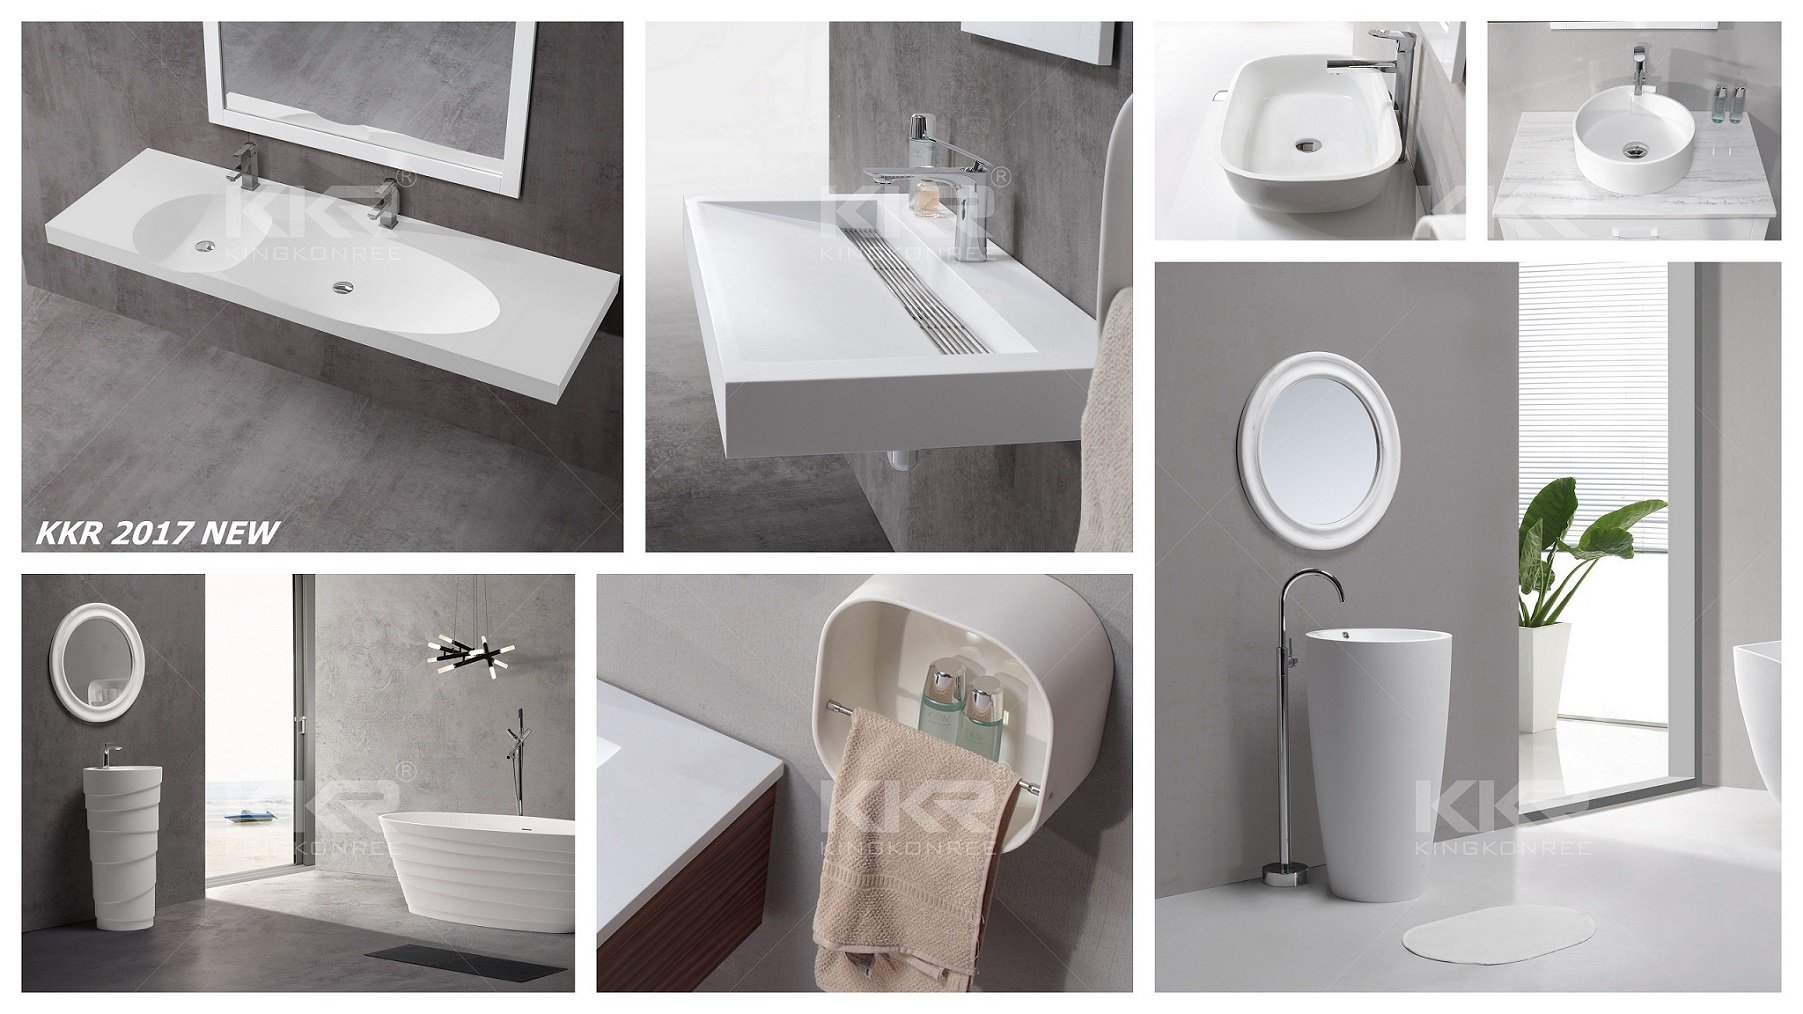 Comparison Of Solid Surface Bathroom Sinks Ceramic Bathroom Basins Solid Surface Sanitarywares